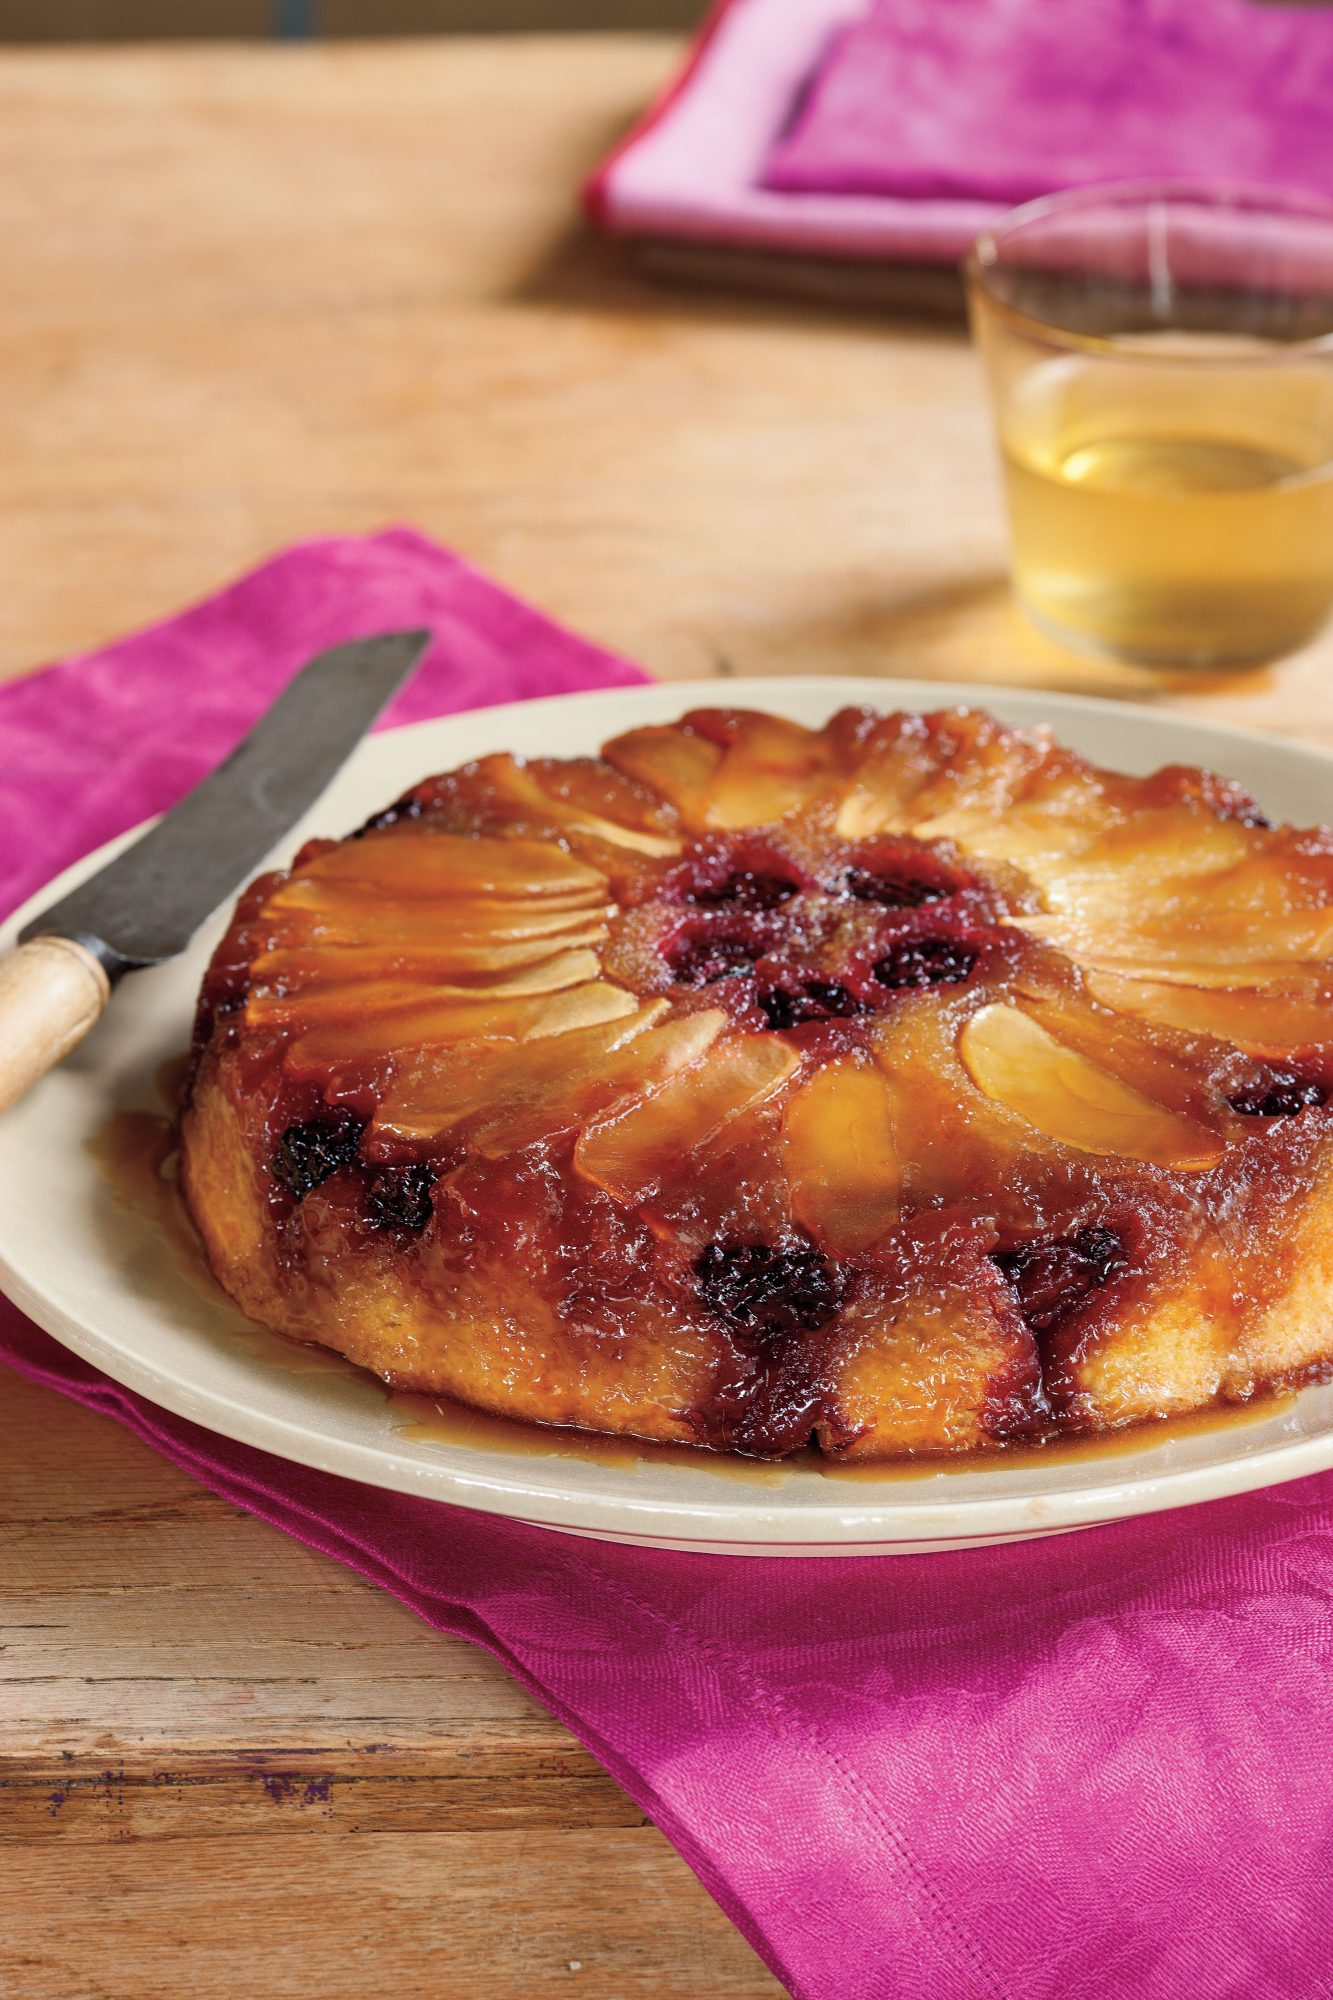 Blackberry-Apple Upside-Down Cake